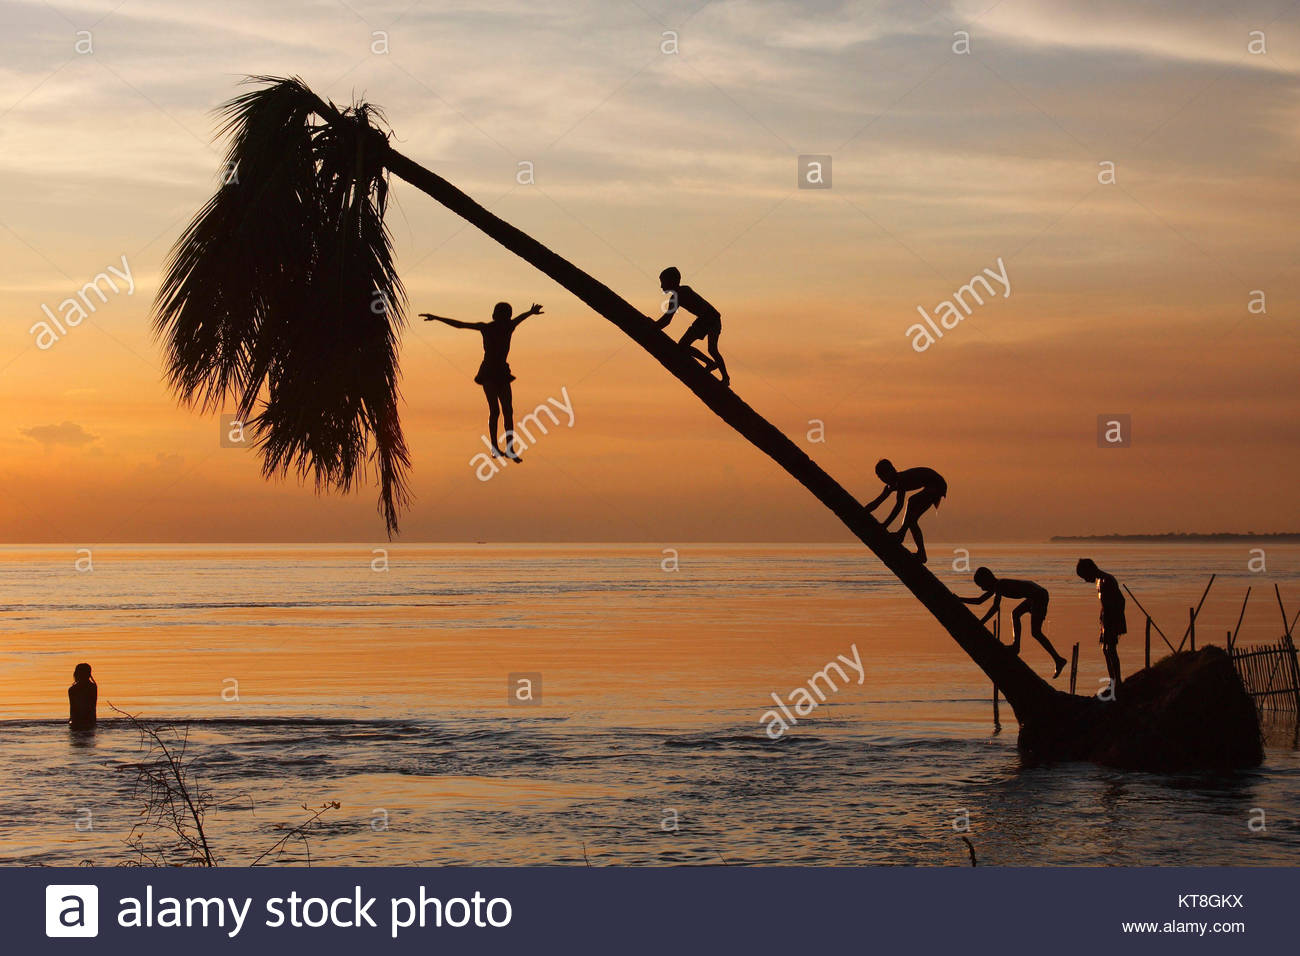 Kids are having childhood fun in Padma River at Mawa, They are climbing on a coconut tree at the shore and jumping - Stock Image